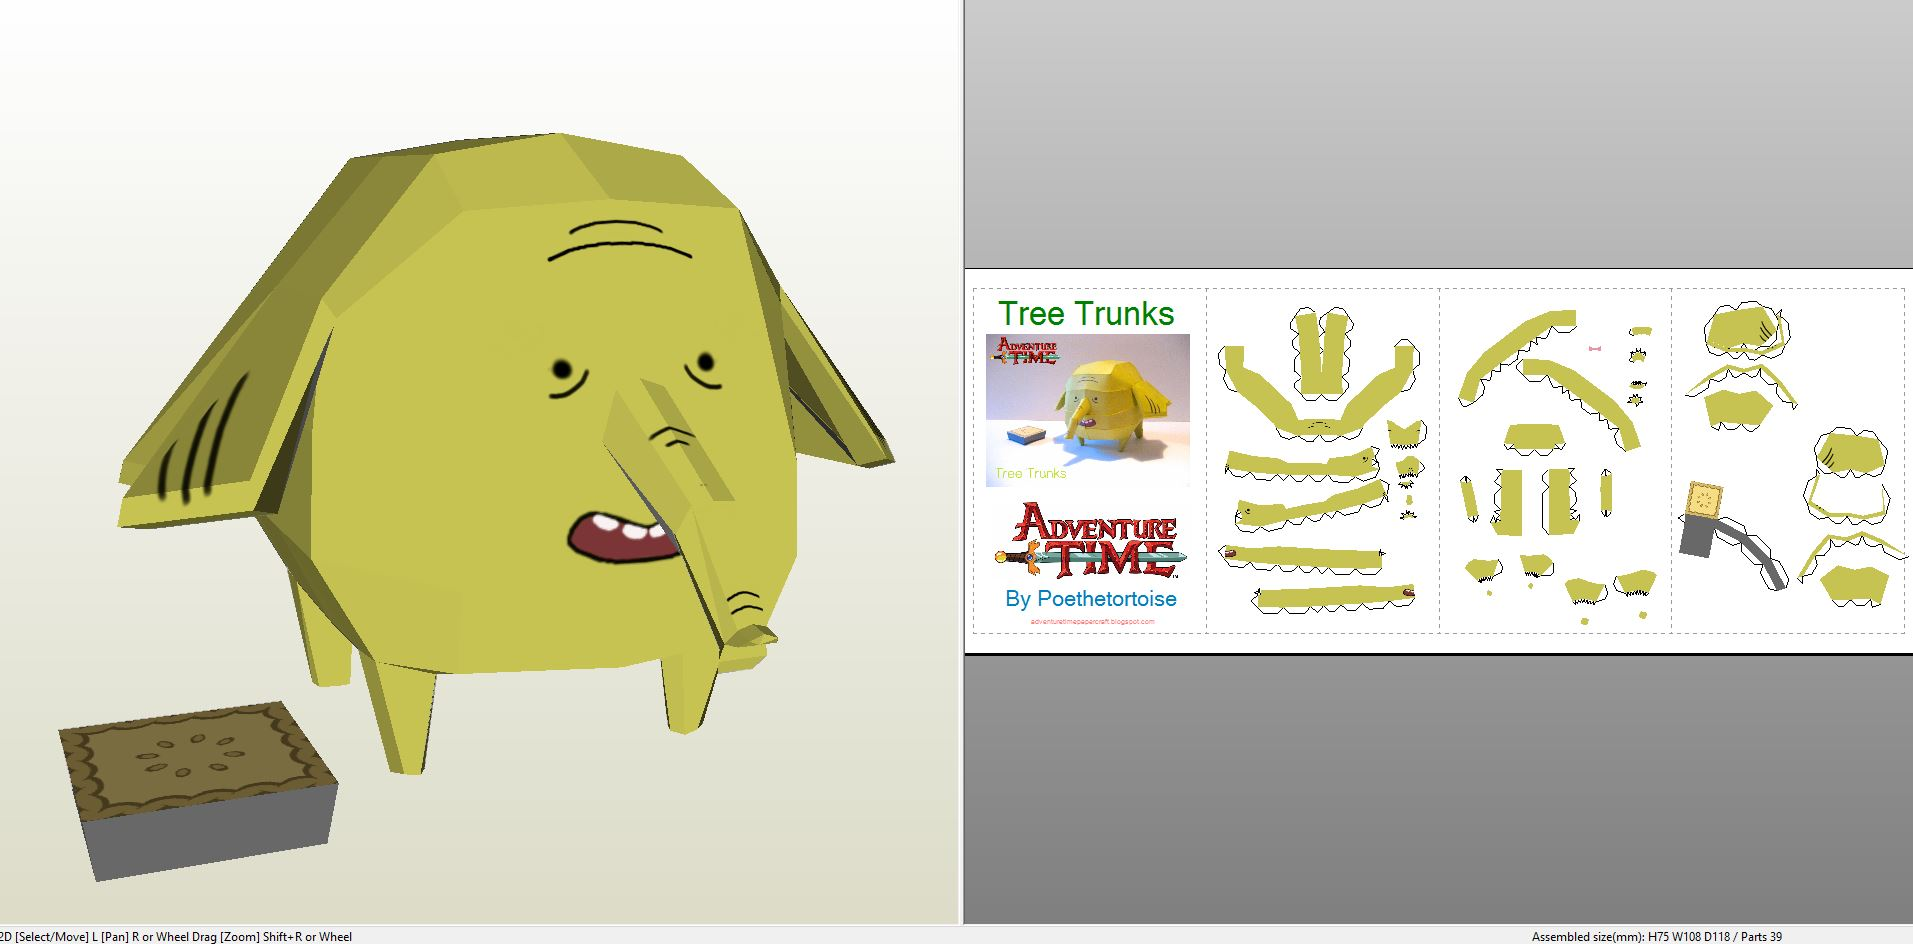 adventuretimetreetrunks